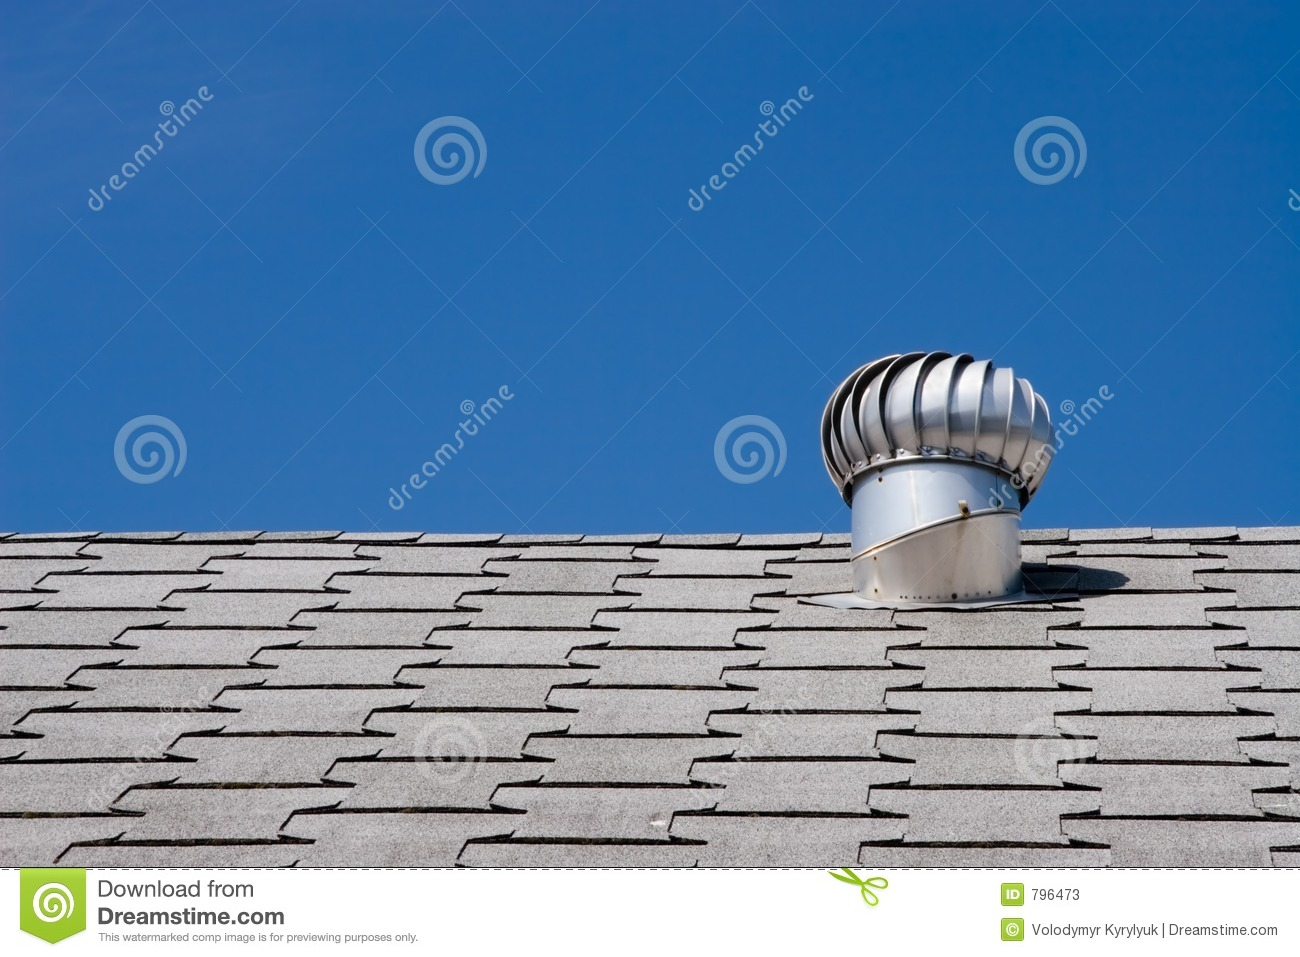 Roof of a commercial building